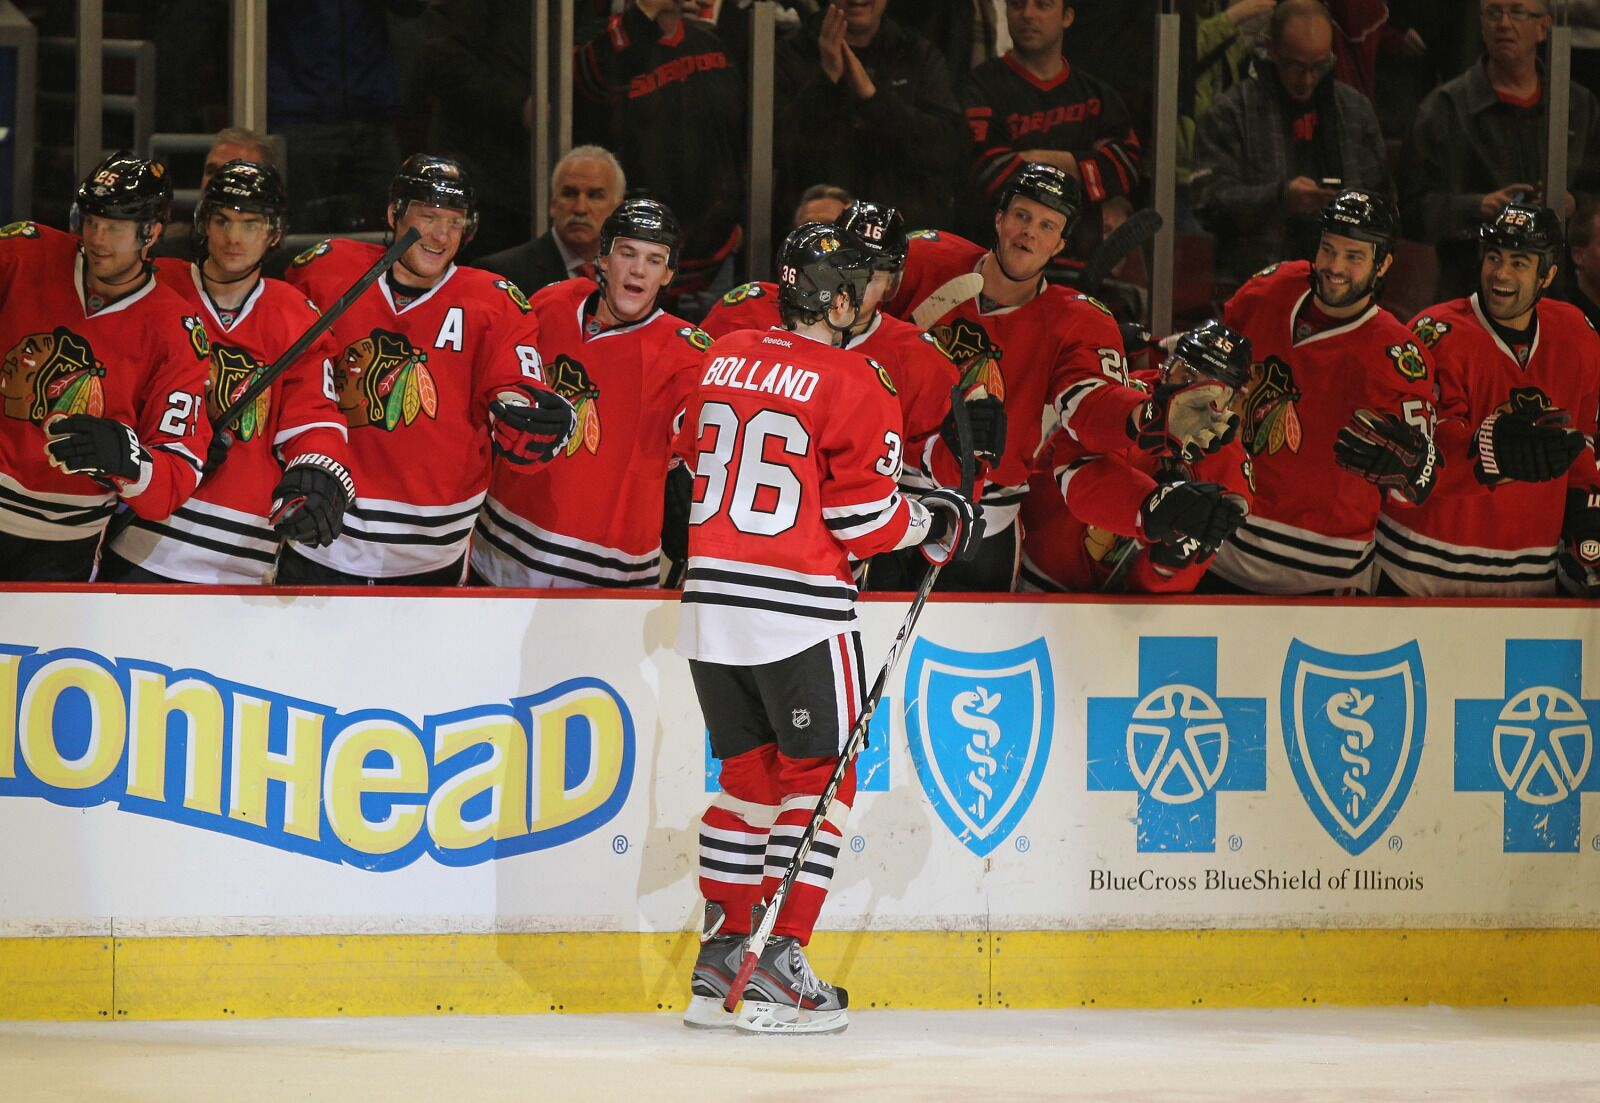 """Chicago Blackhawks: Dave Bolland will get """"One More Shift"""""""